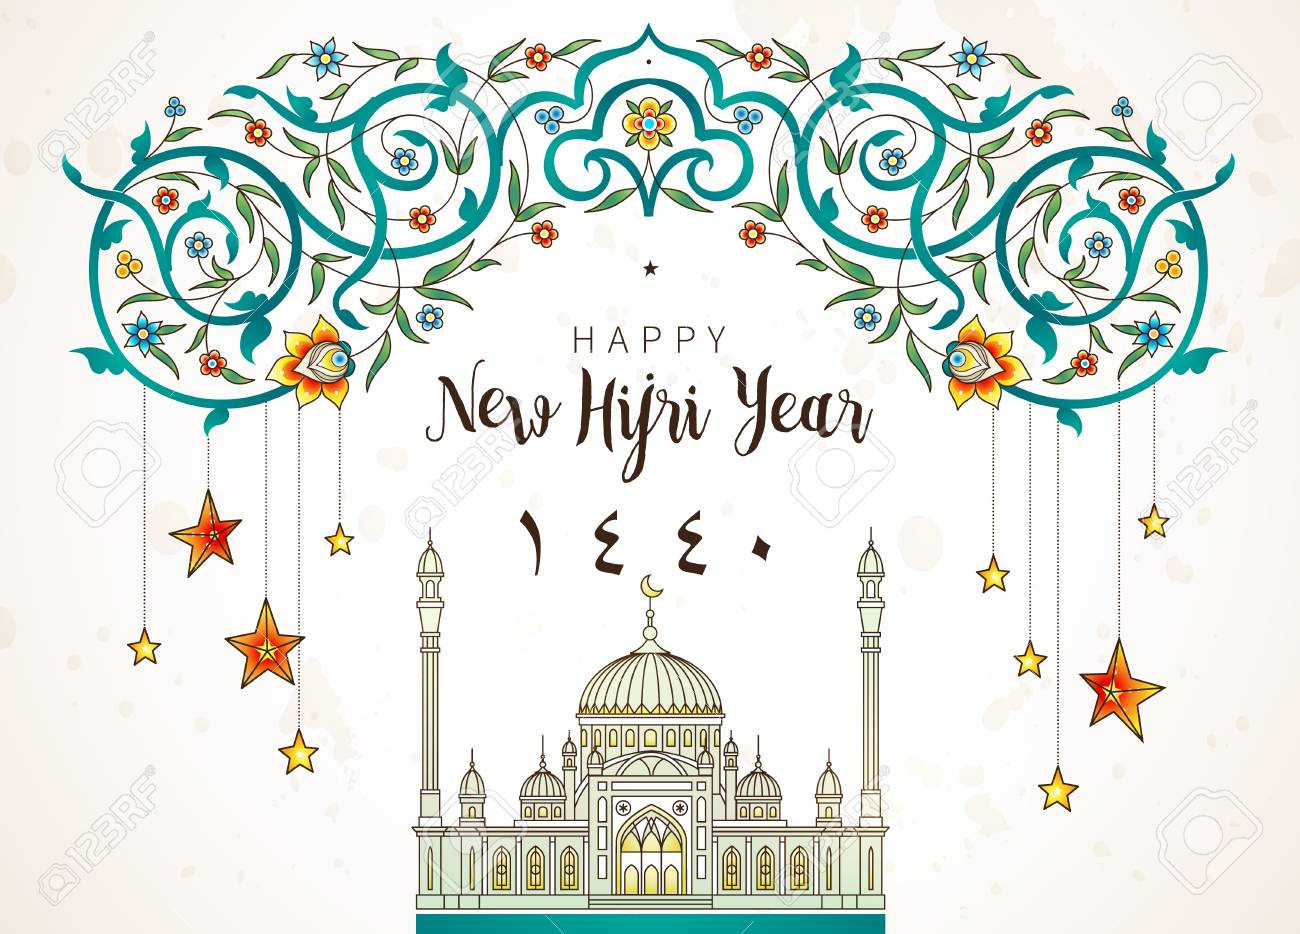 Happy New Hijri Year 1440. Vector holiday card with calligraphy, floral frame, stars, mosque for muslim celebration. Islamic illustration for gift certificates, banners. Ornate decor in Eastern style. - 104865500